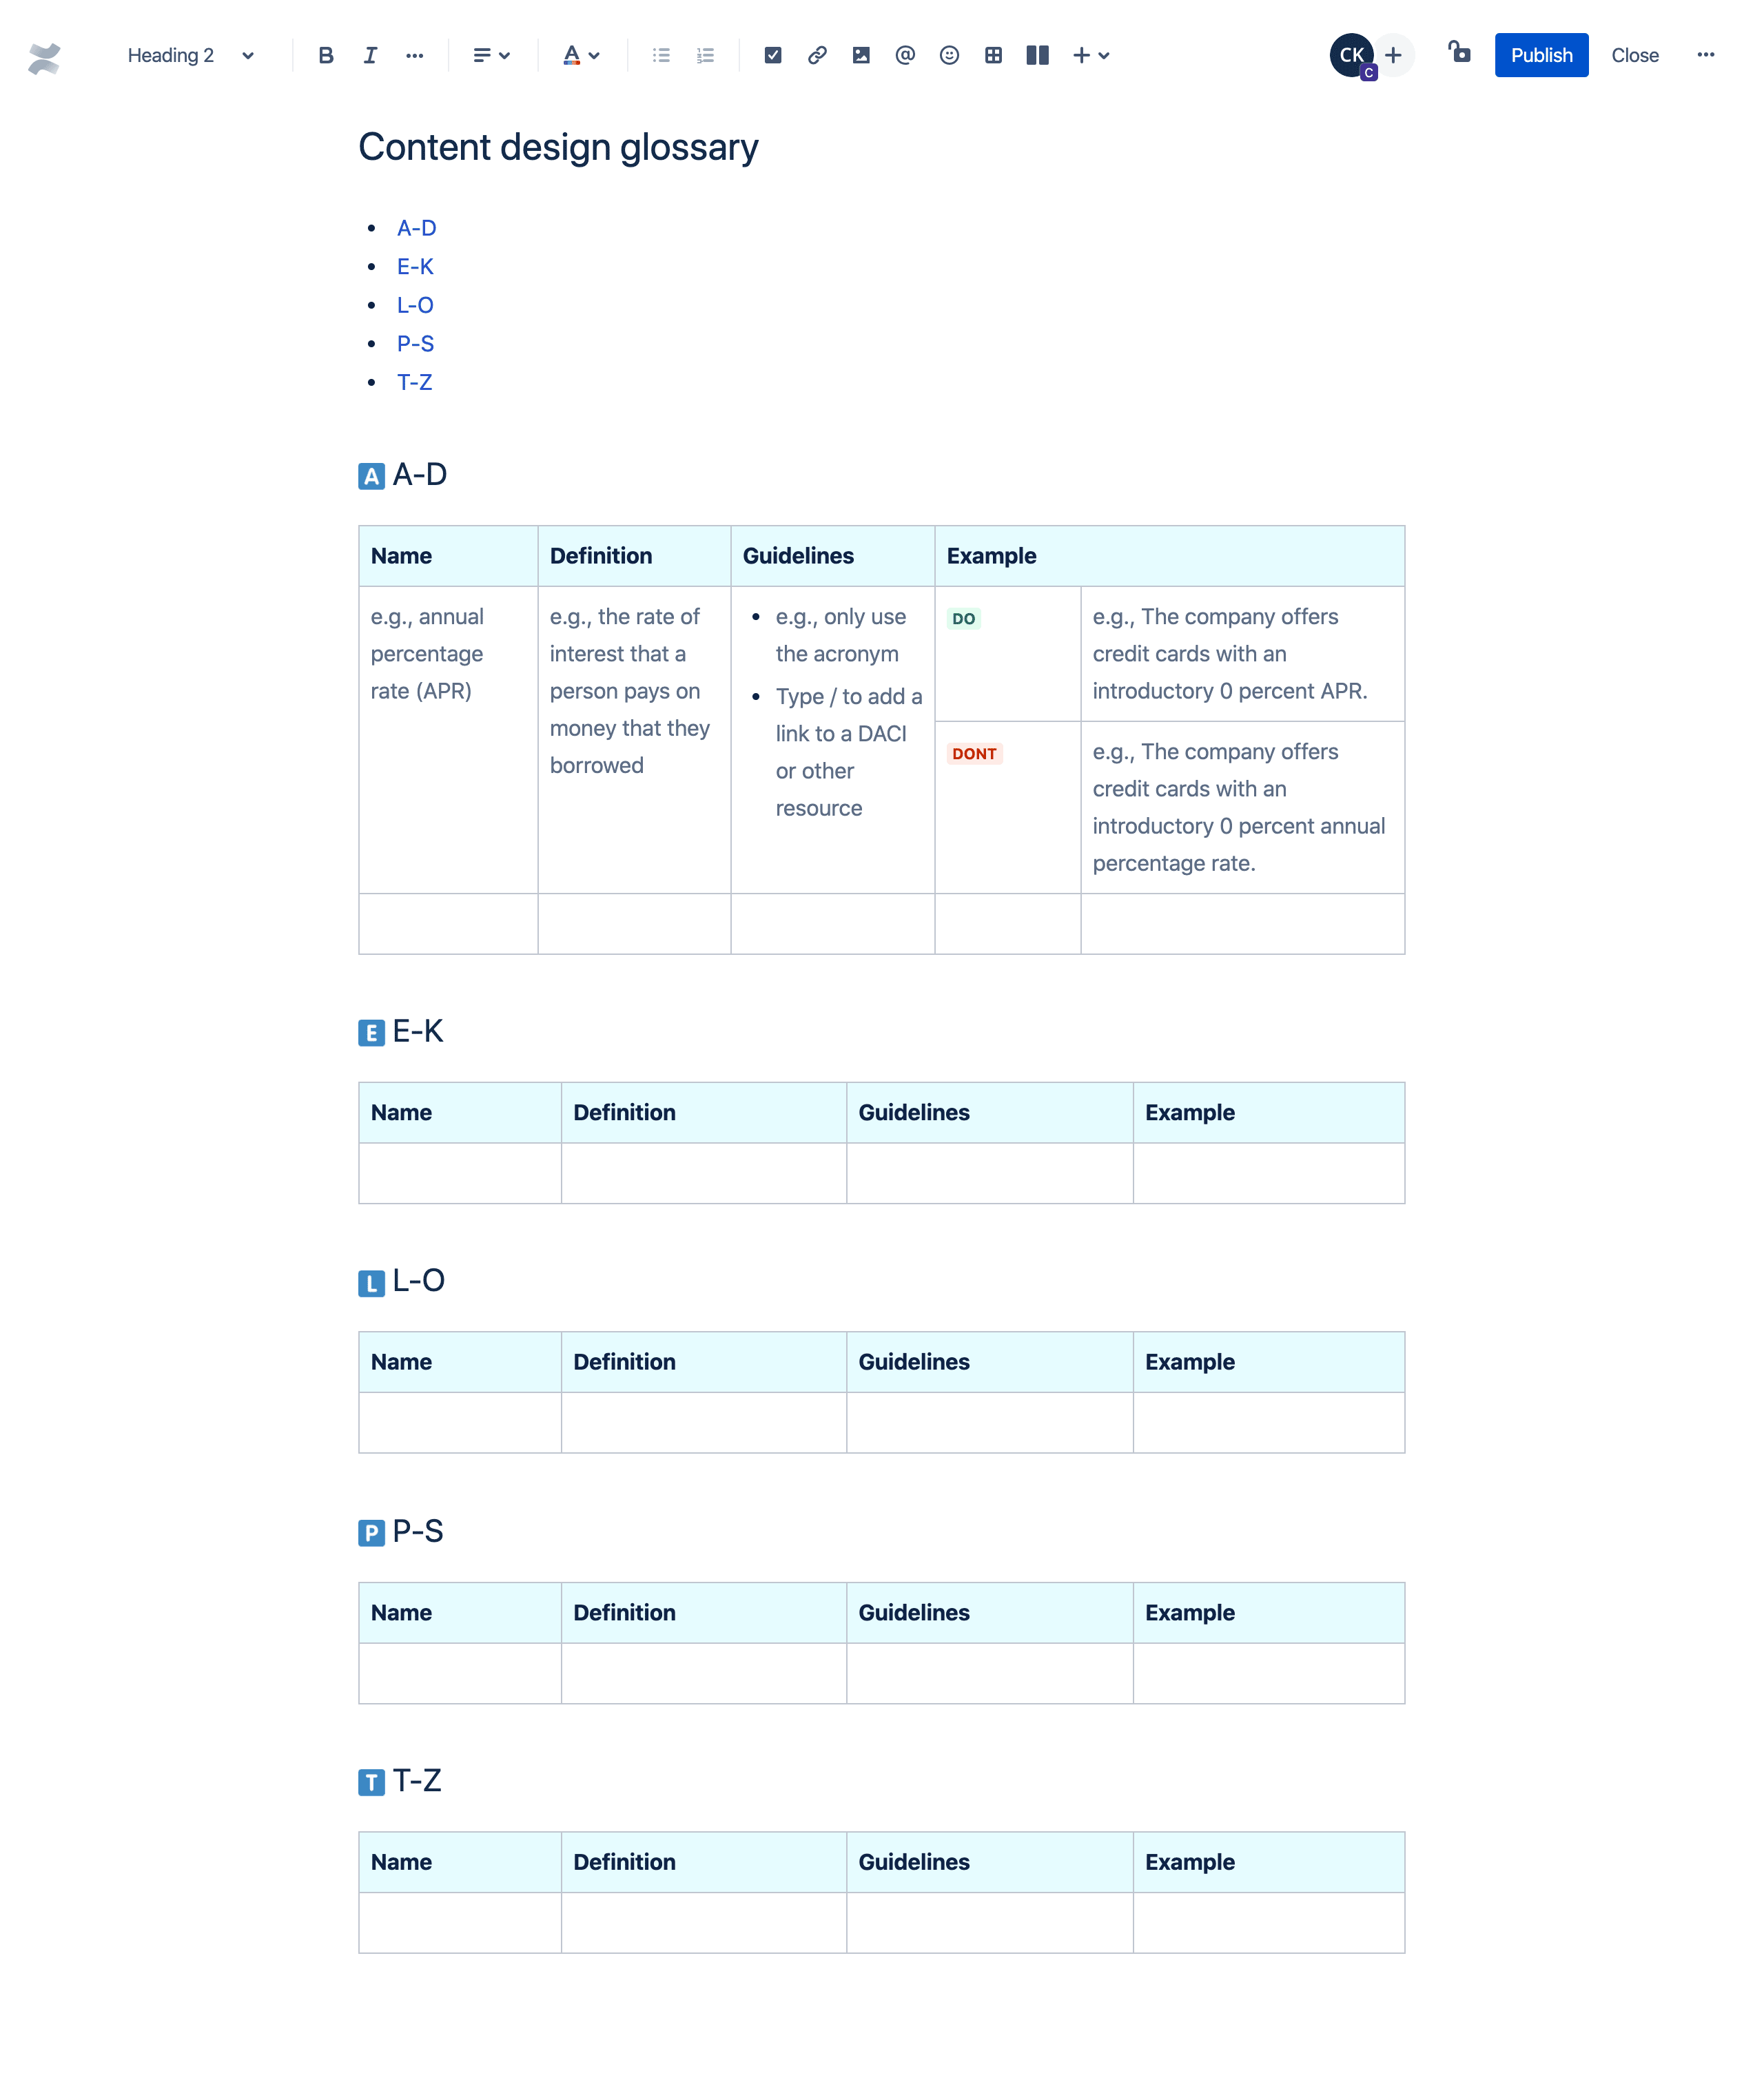 Content design glossary template